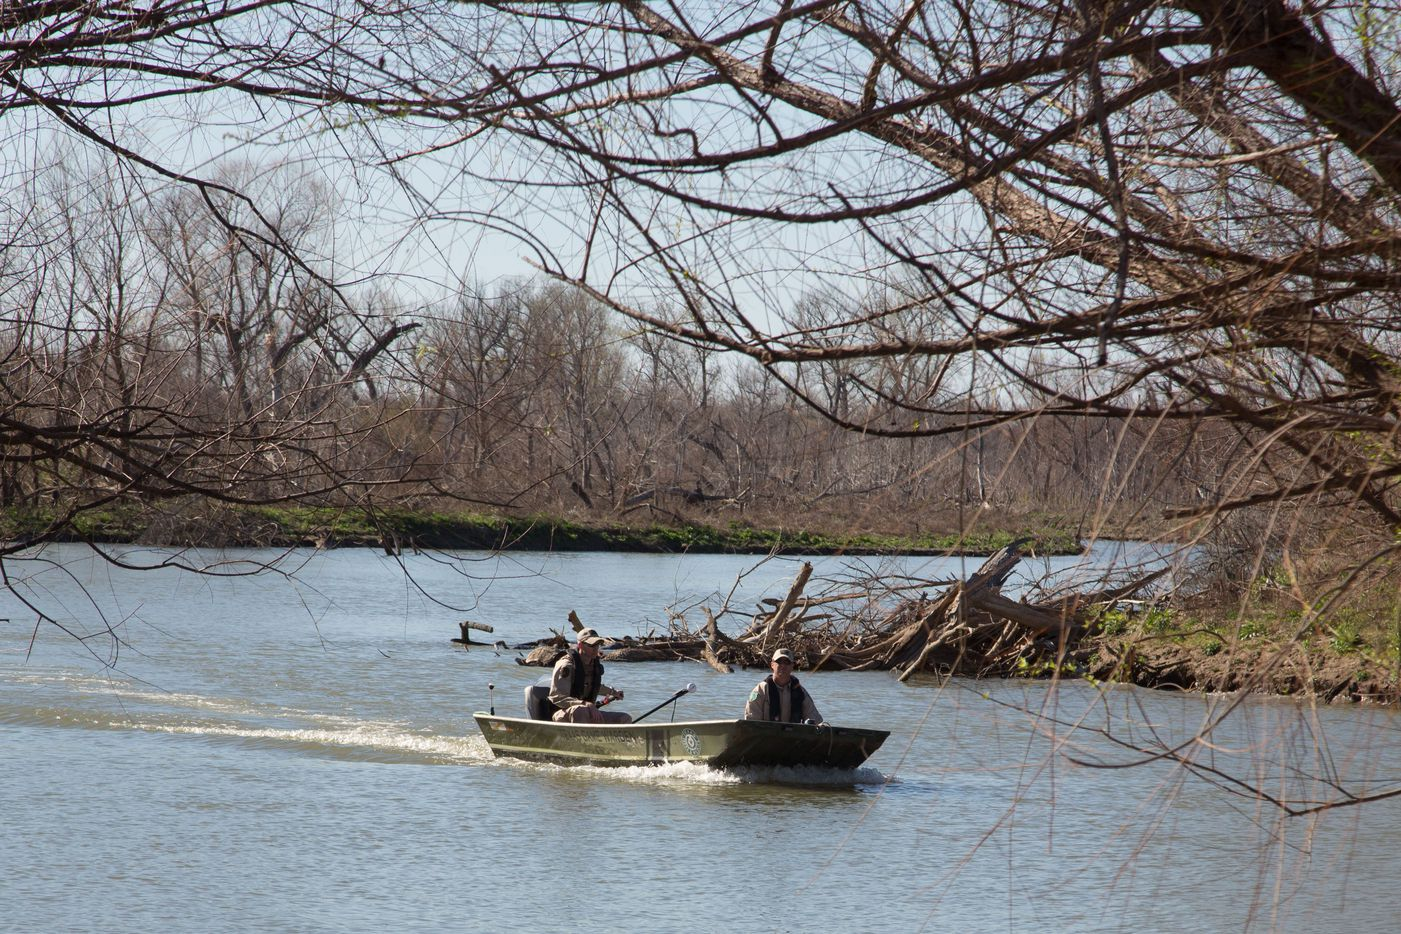 Texas game wardens searched for Matthew Meinert at Trophy Club Park on Tuesday. (Jeff Woo/Denton Record-Chronicle)